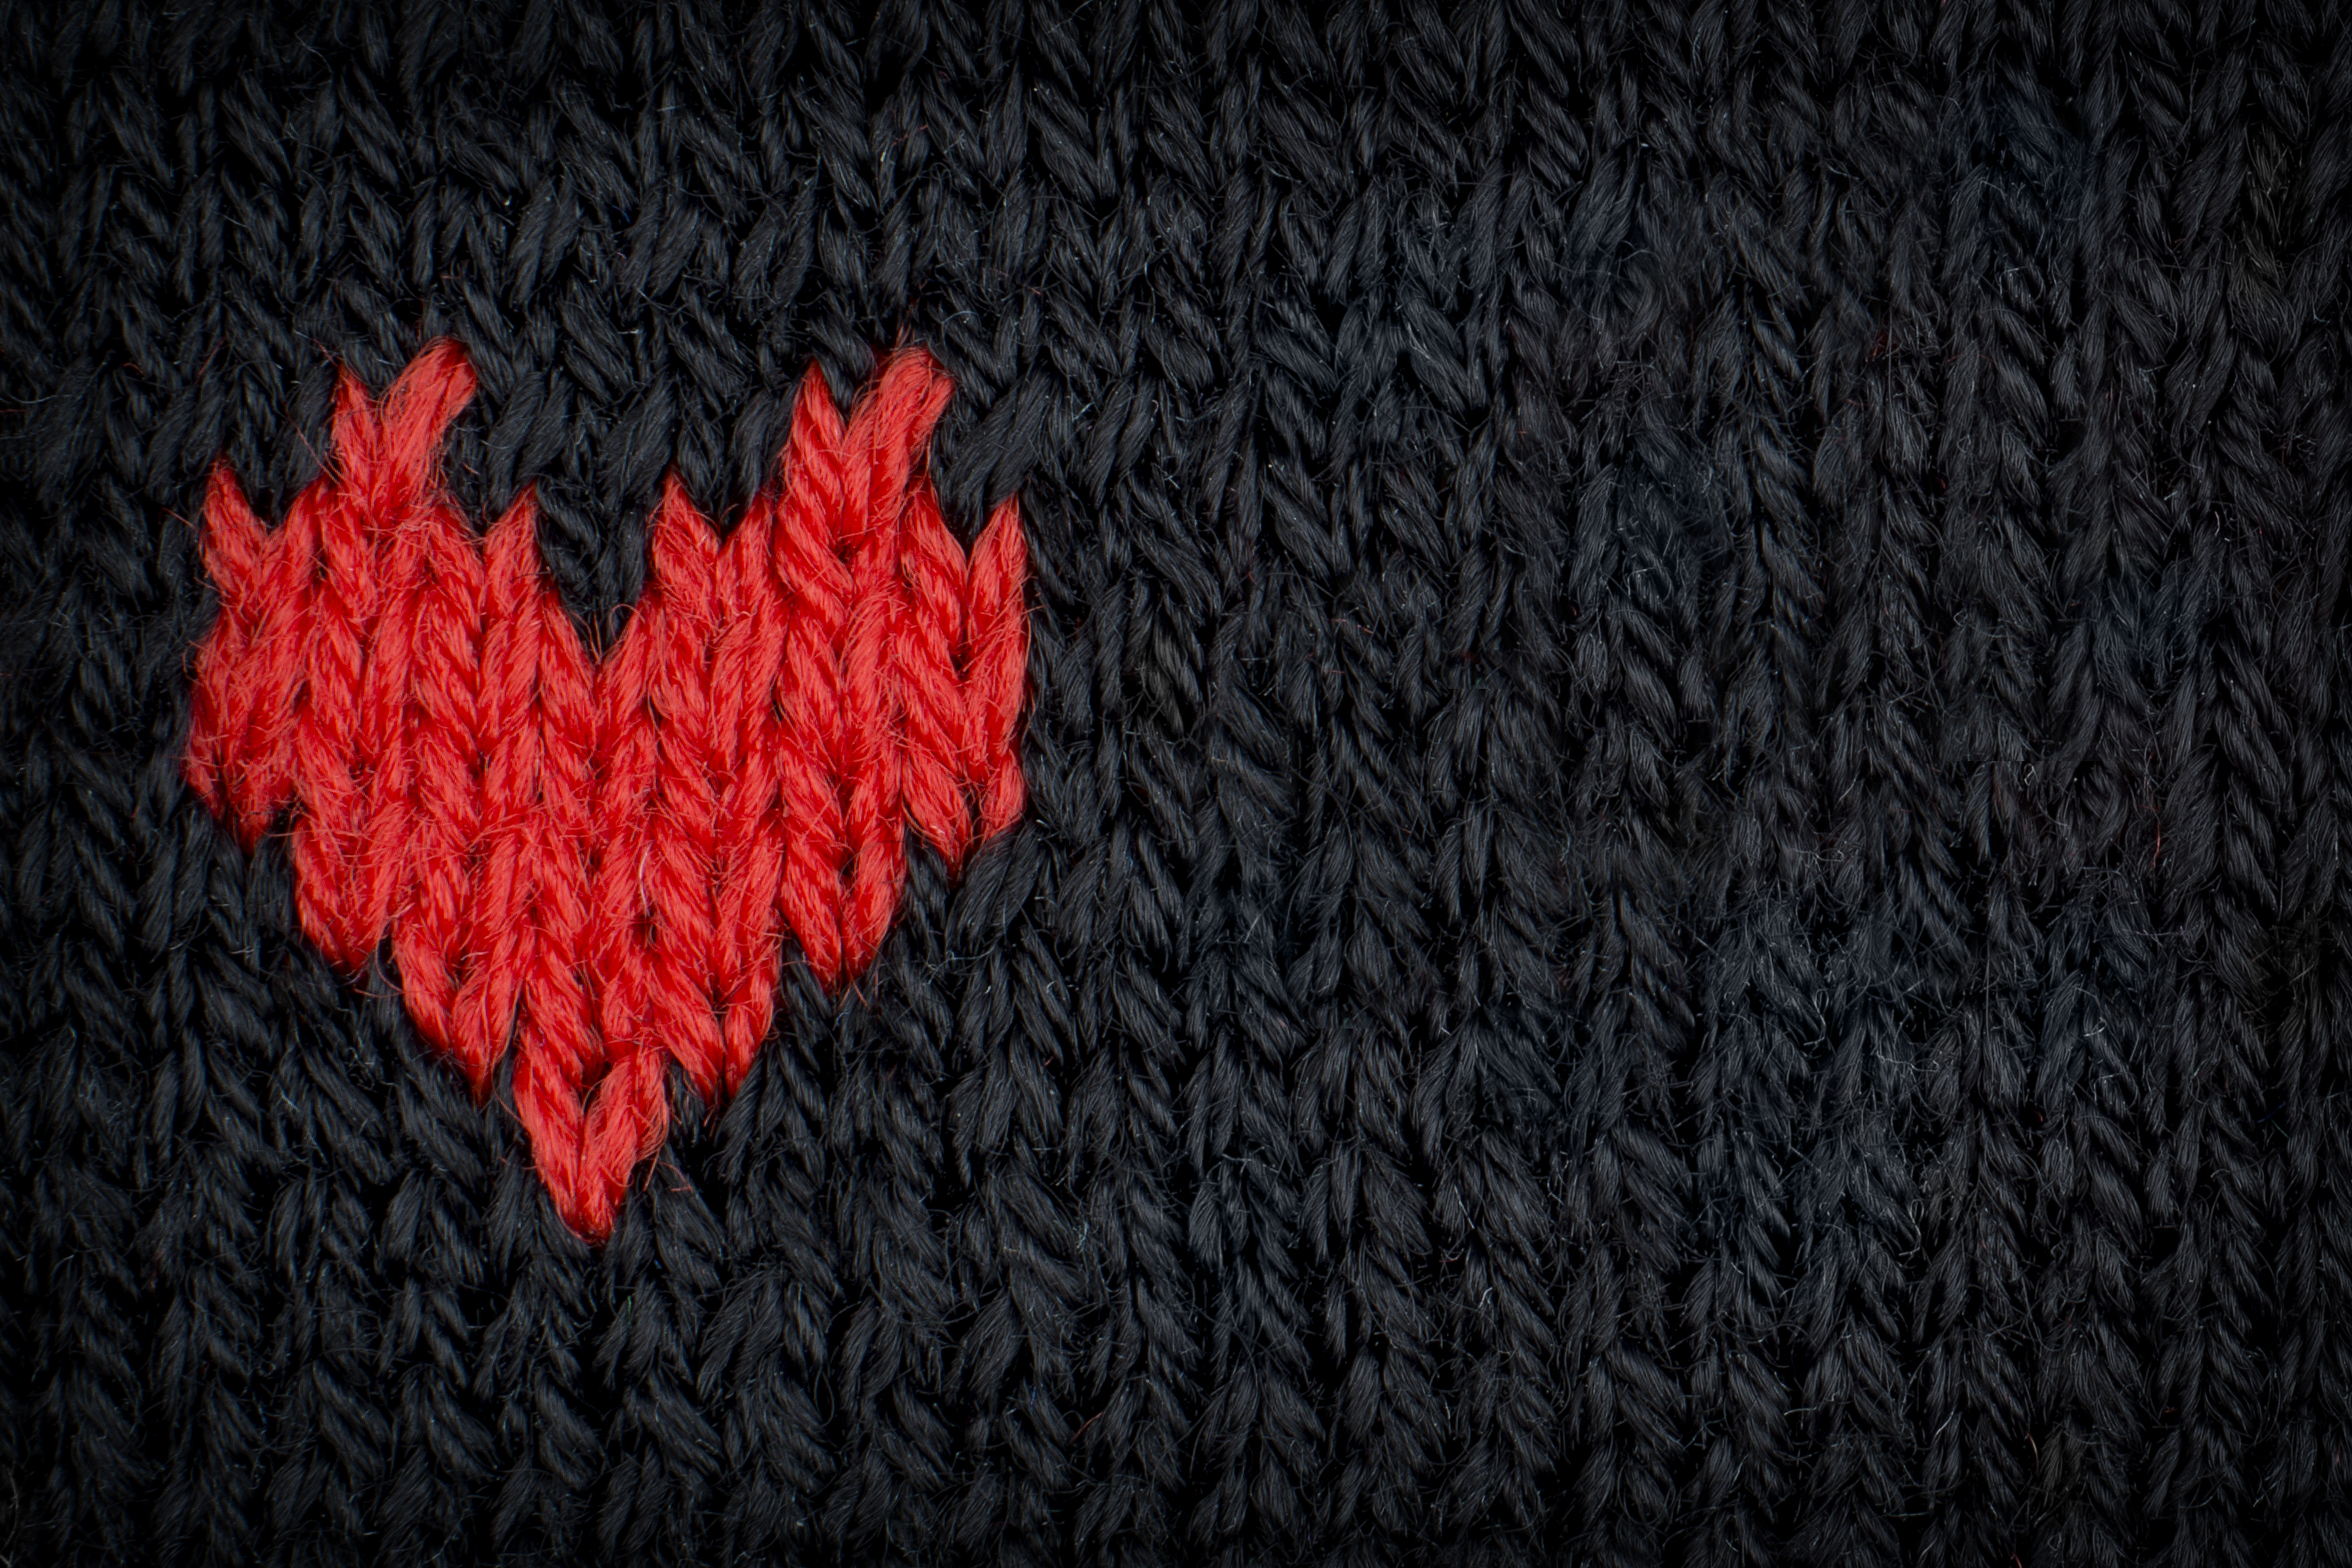 Rivalry Knitting Patterns The Power Of Ravelrys Stance Against White Supremacy Reaches Beyond